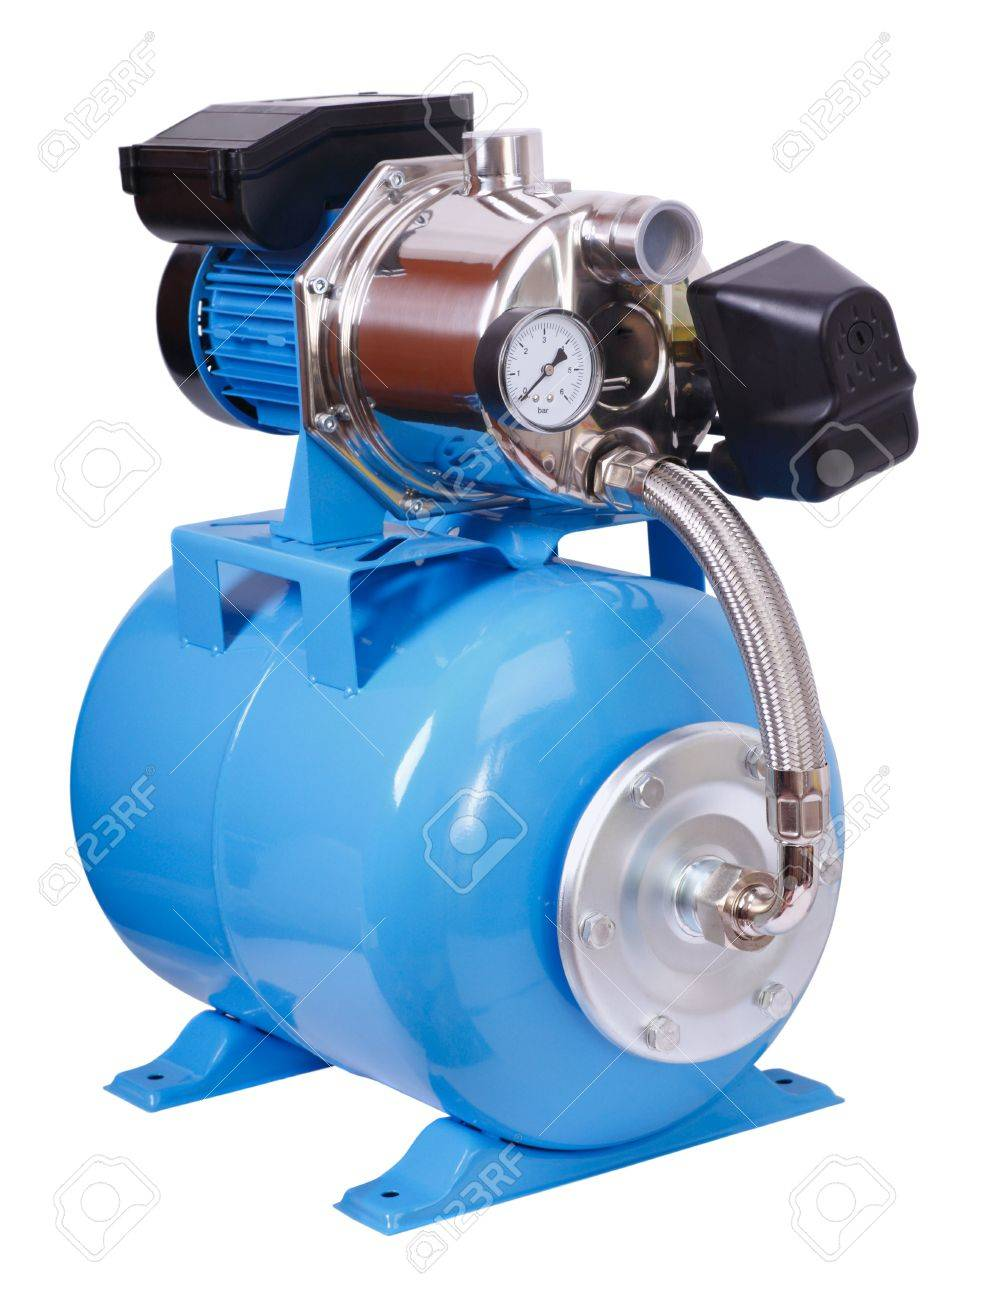 Individual pump station for the home. Electric high pressure pump - isolated on white. Stock Photo - 7320618